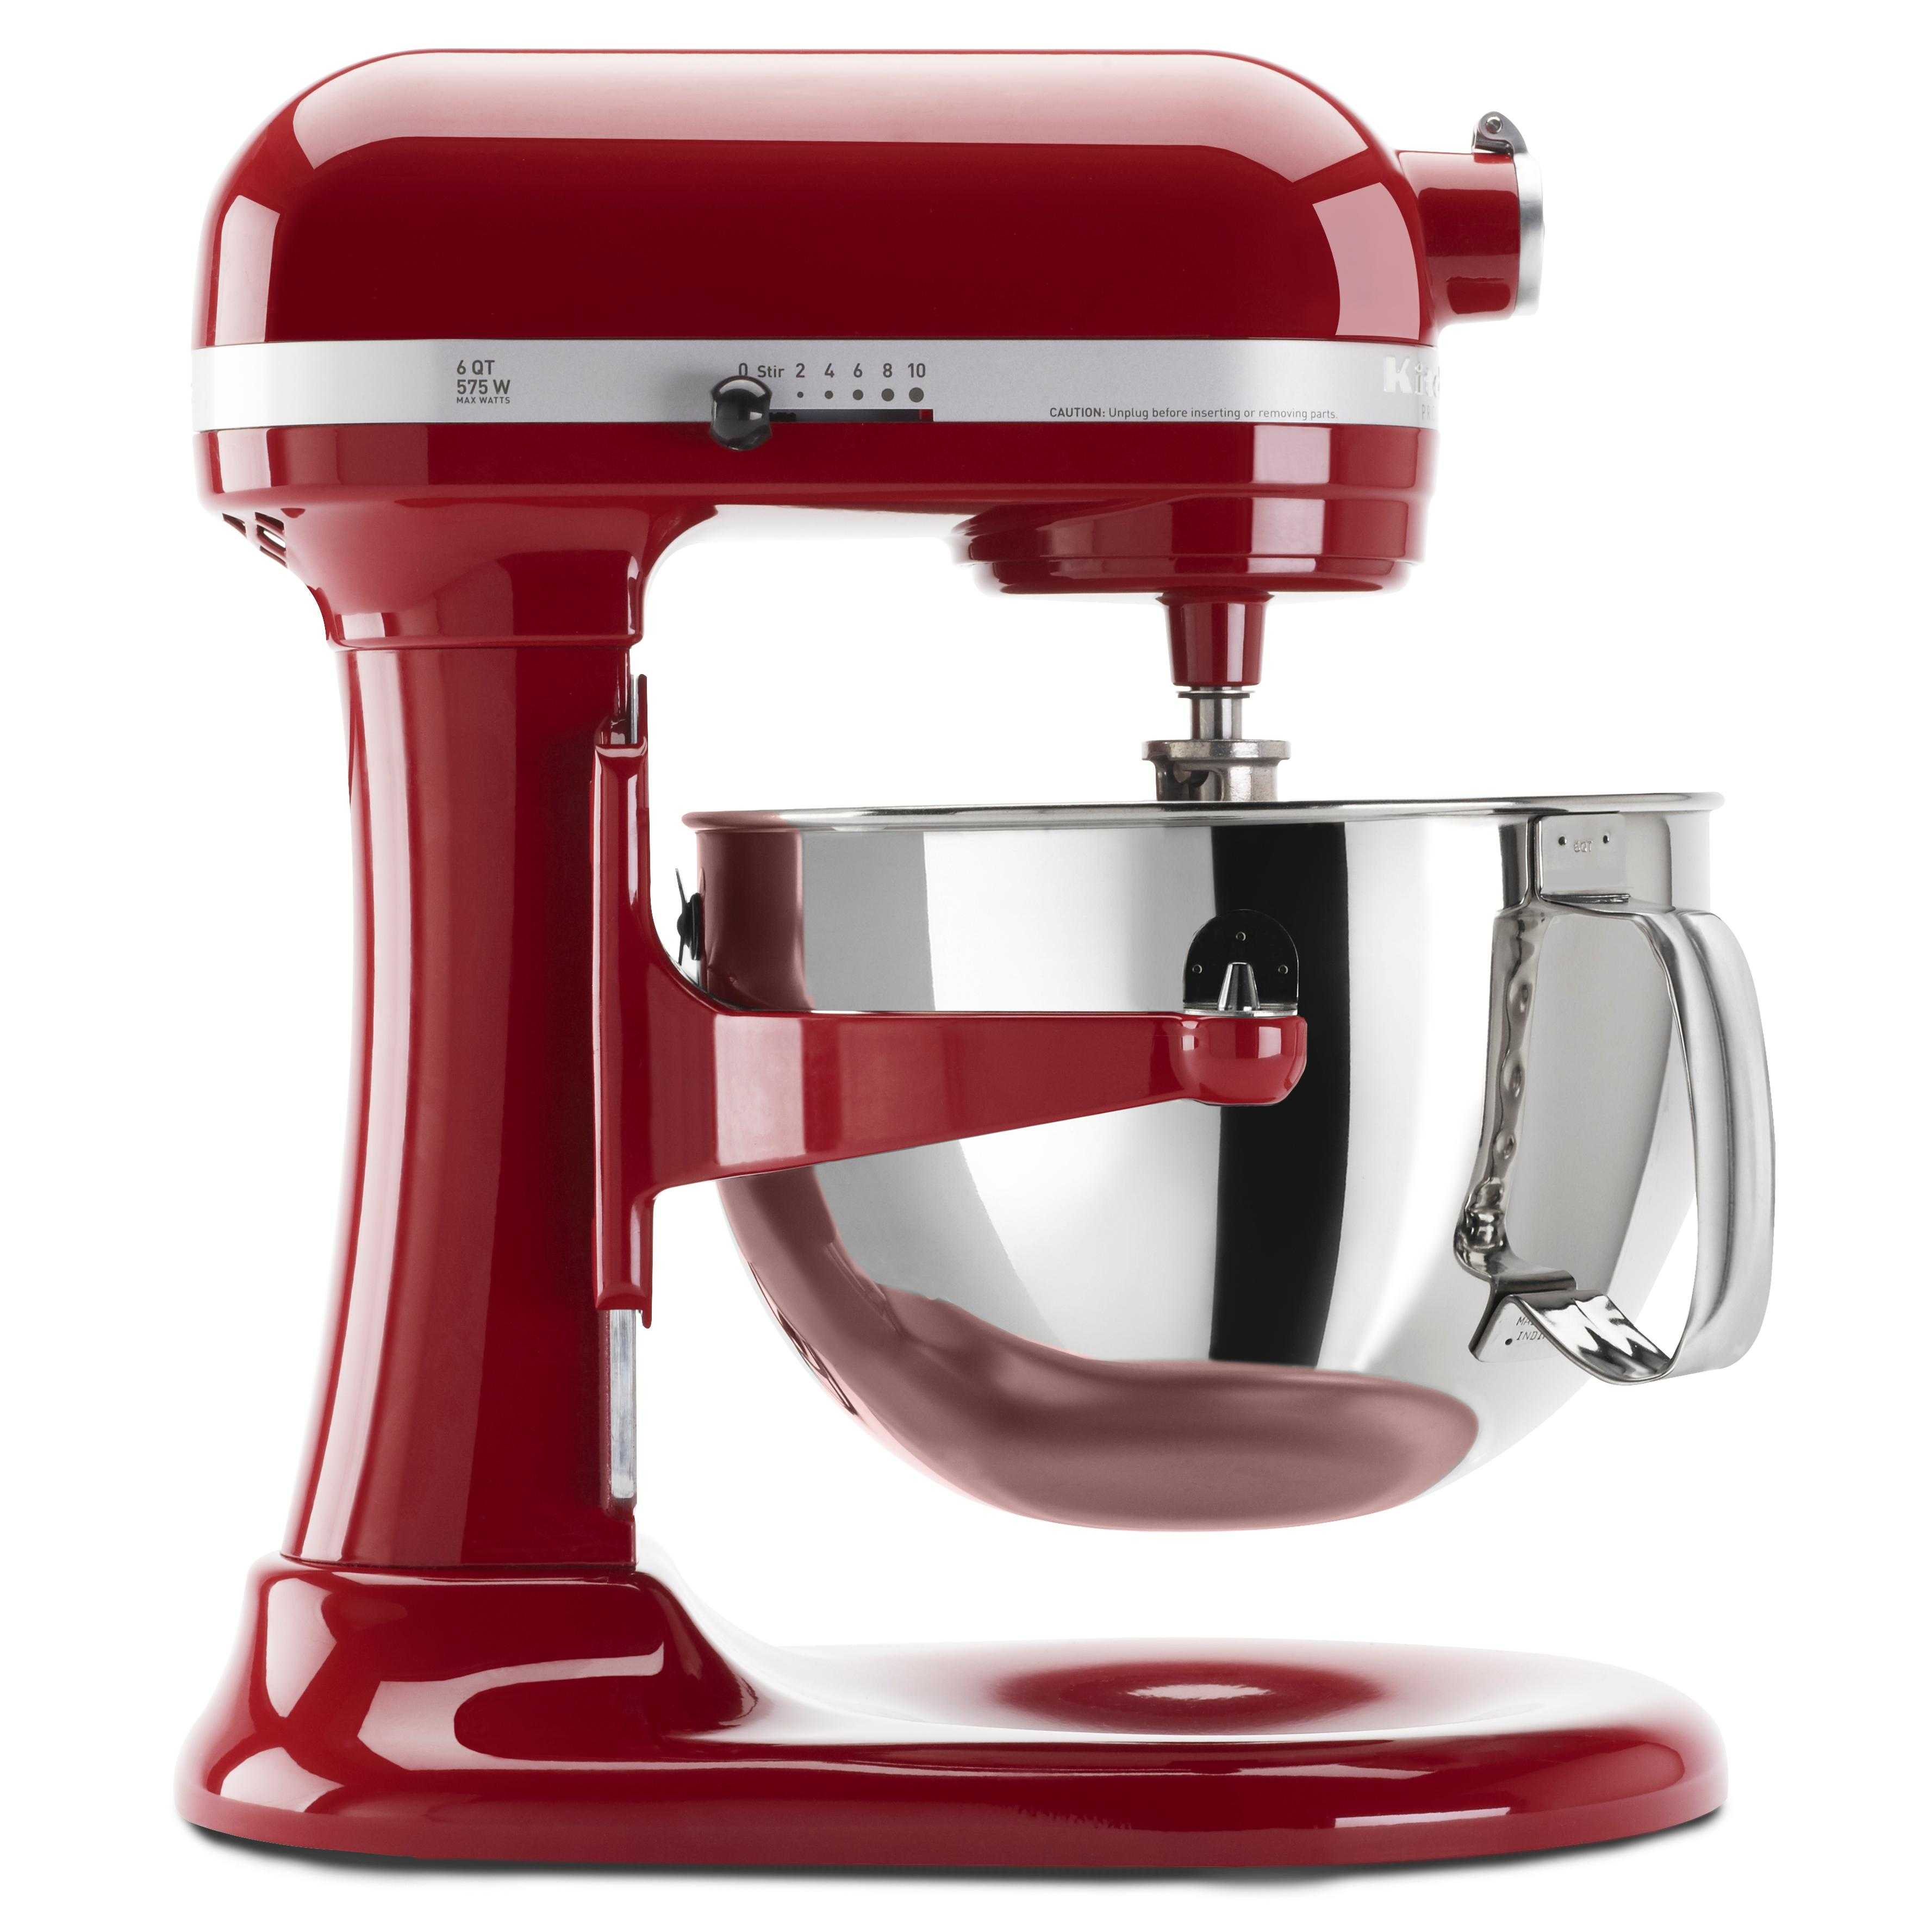 kitchenaid kp26m1xga 6 qt professional 600 series green apple